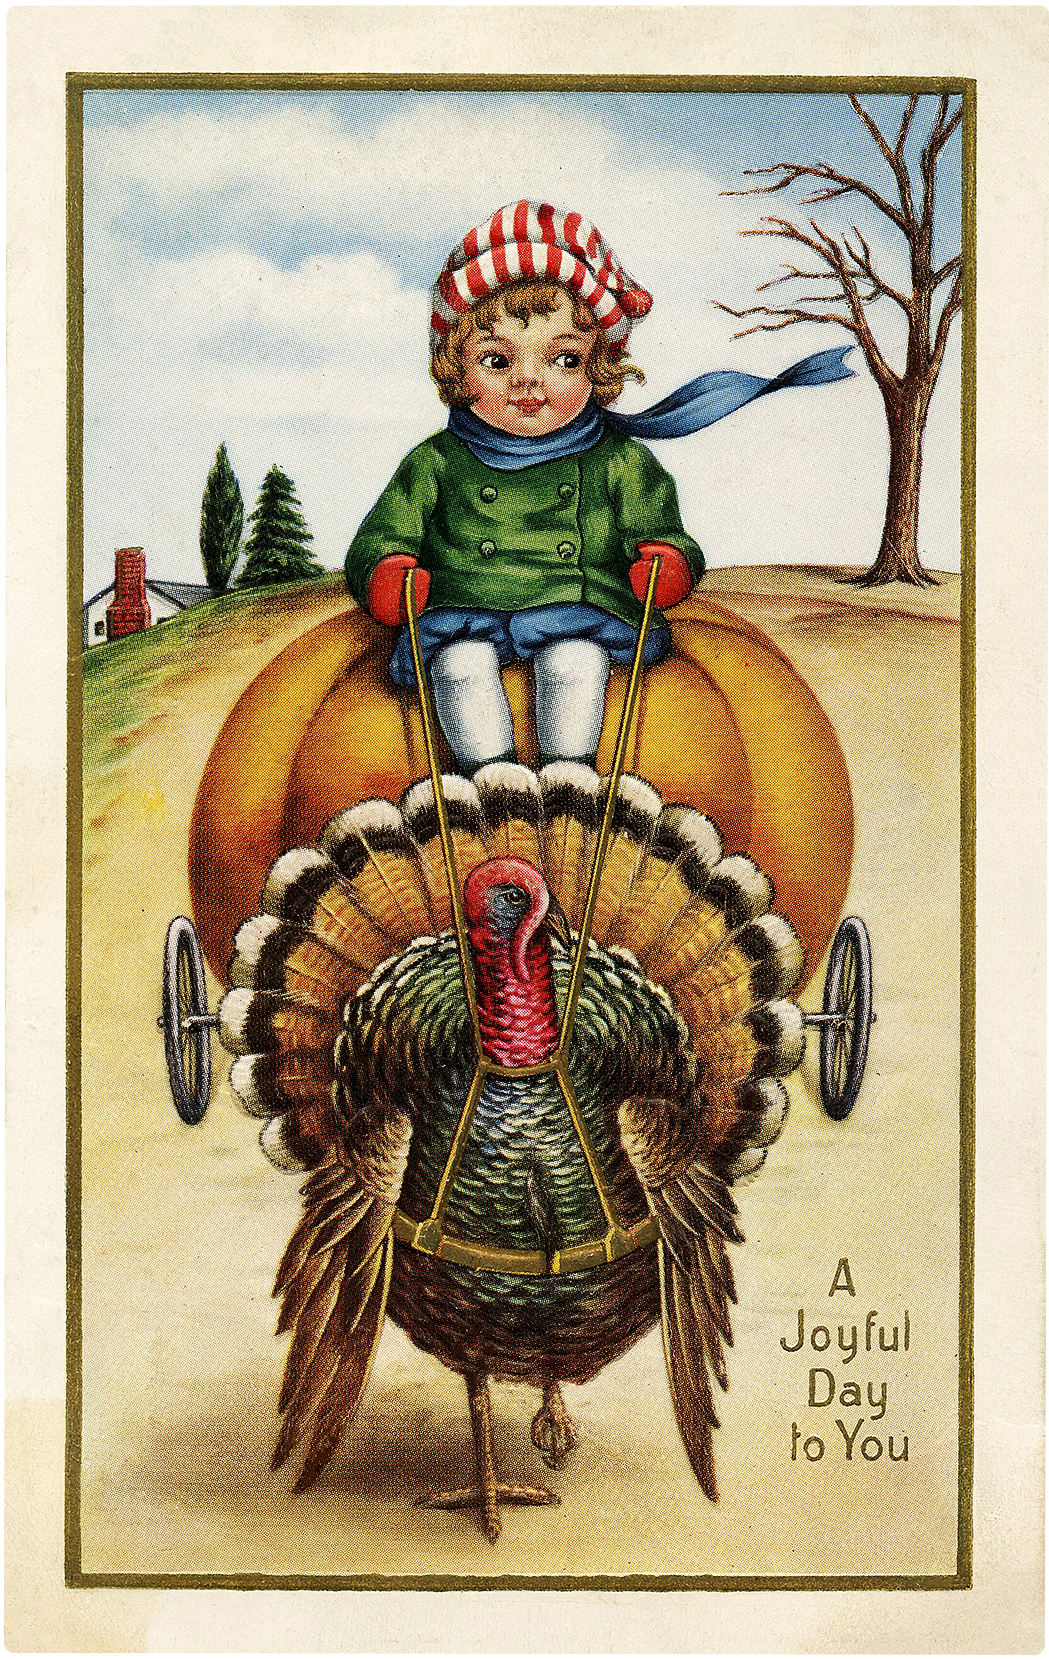 6 Funny Thanksgiving Pictures Free! - The Graphics Fairy